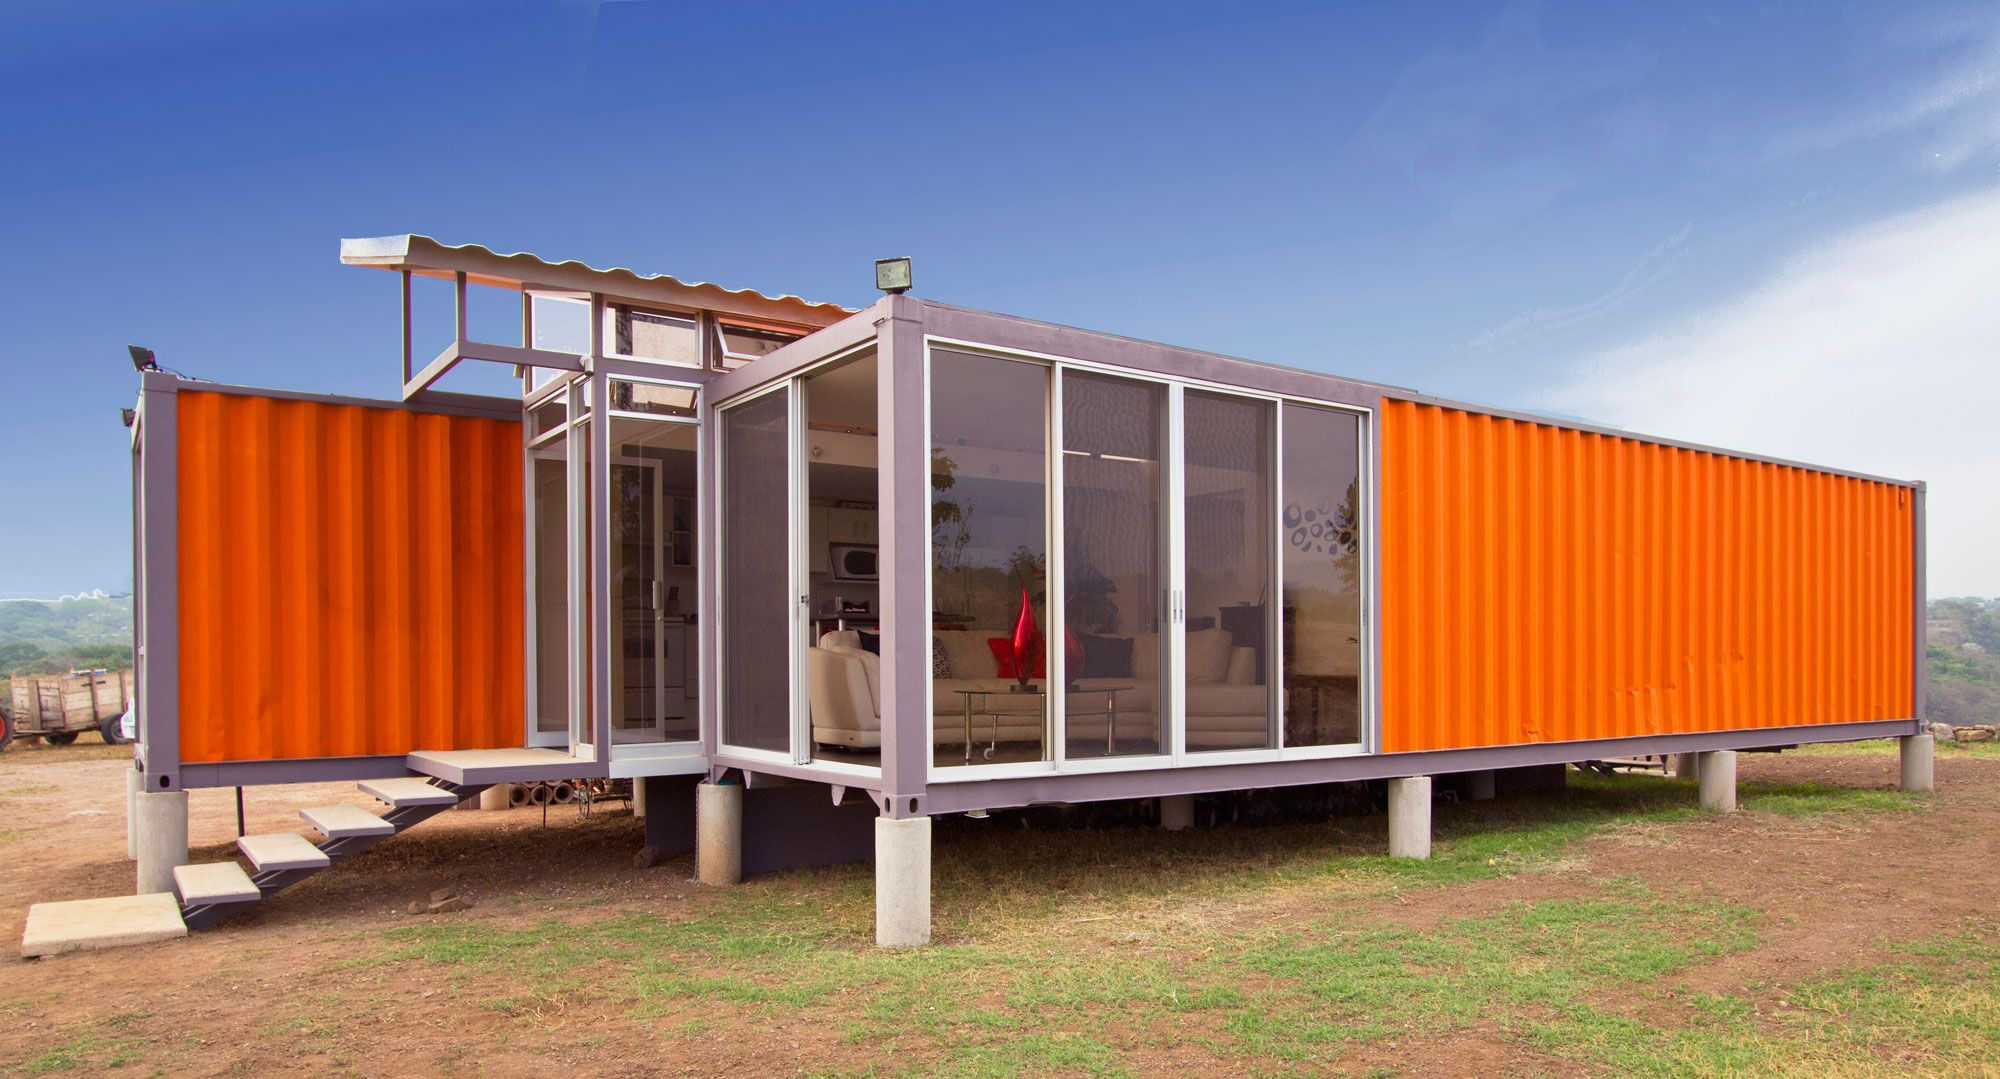 Shipping container homes in florida container house the life and times of a renaissance ronin